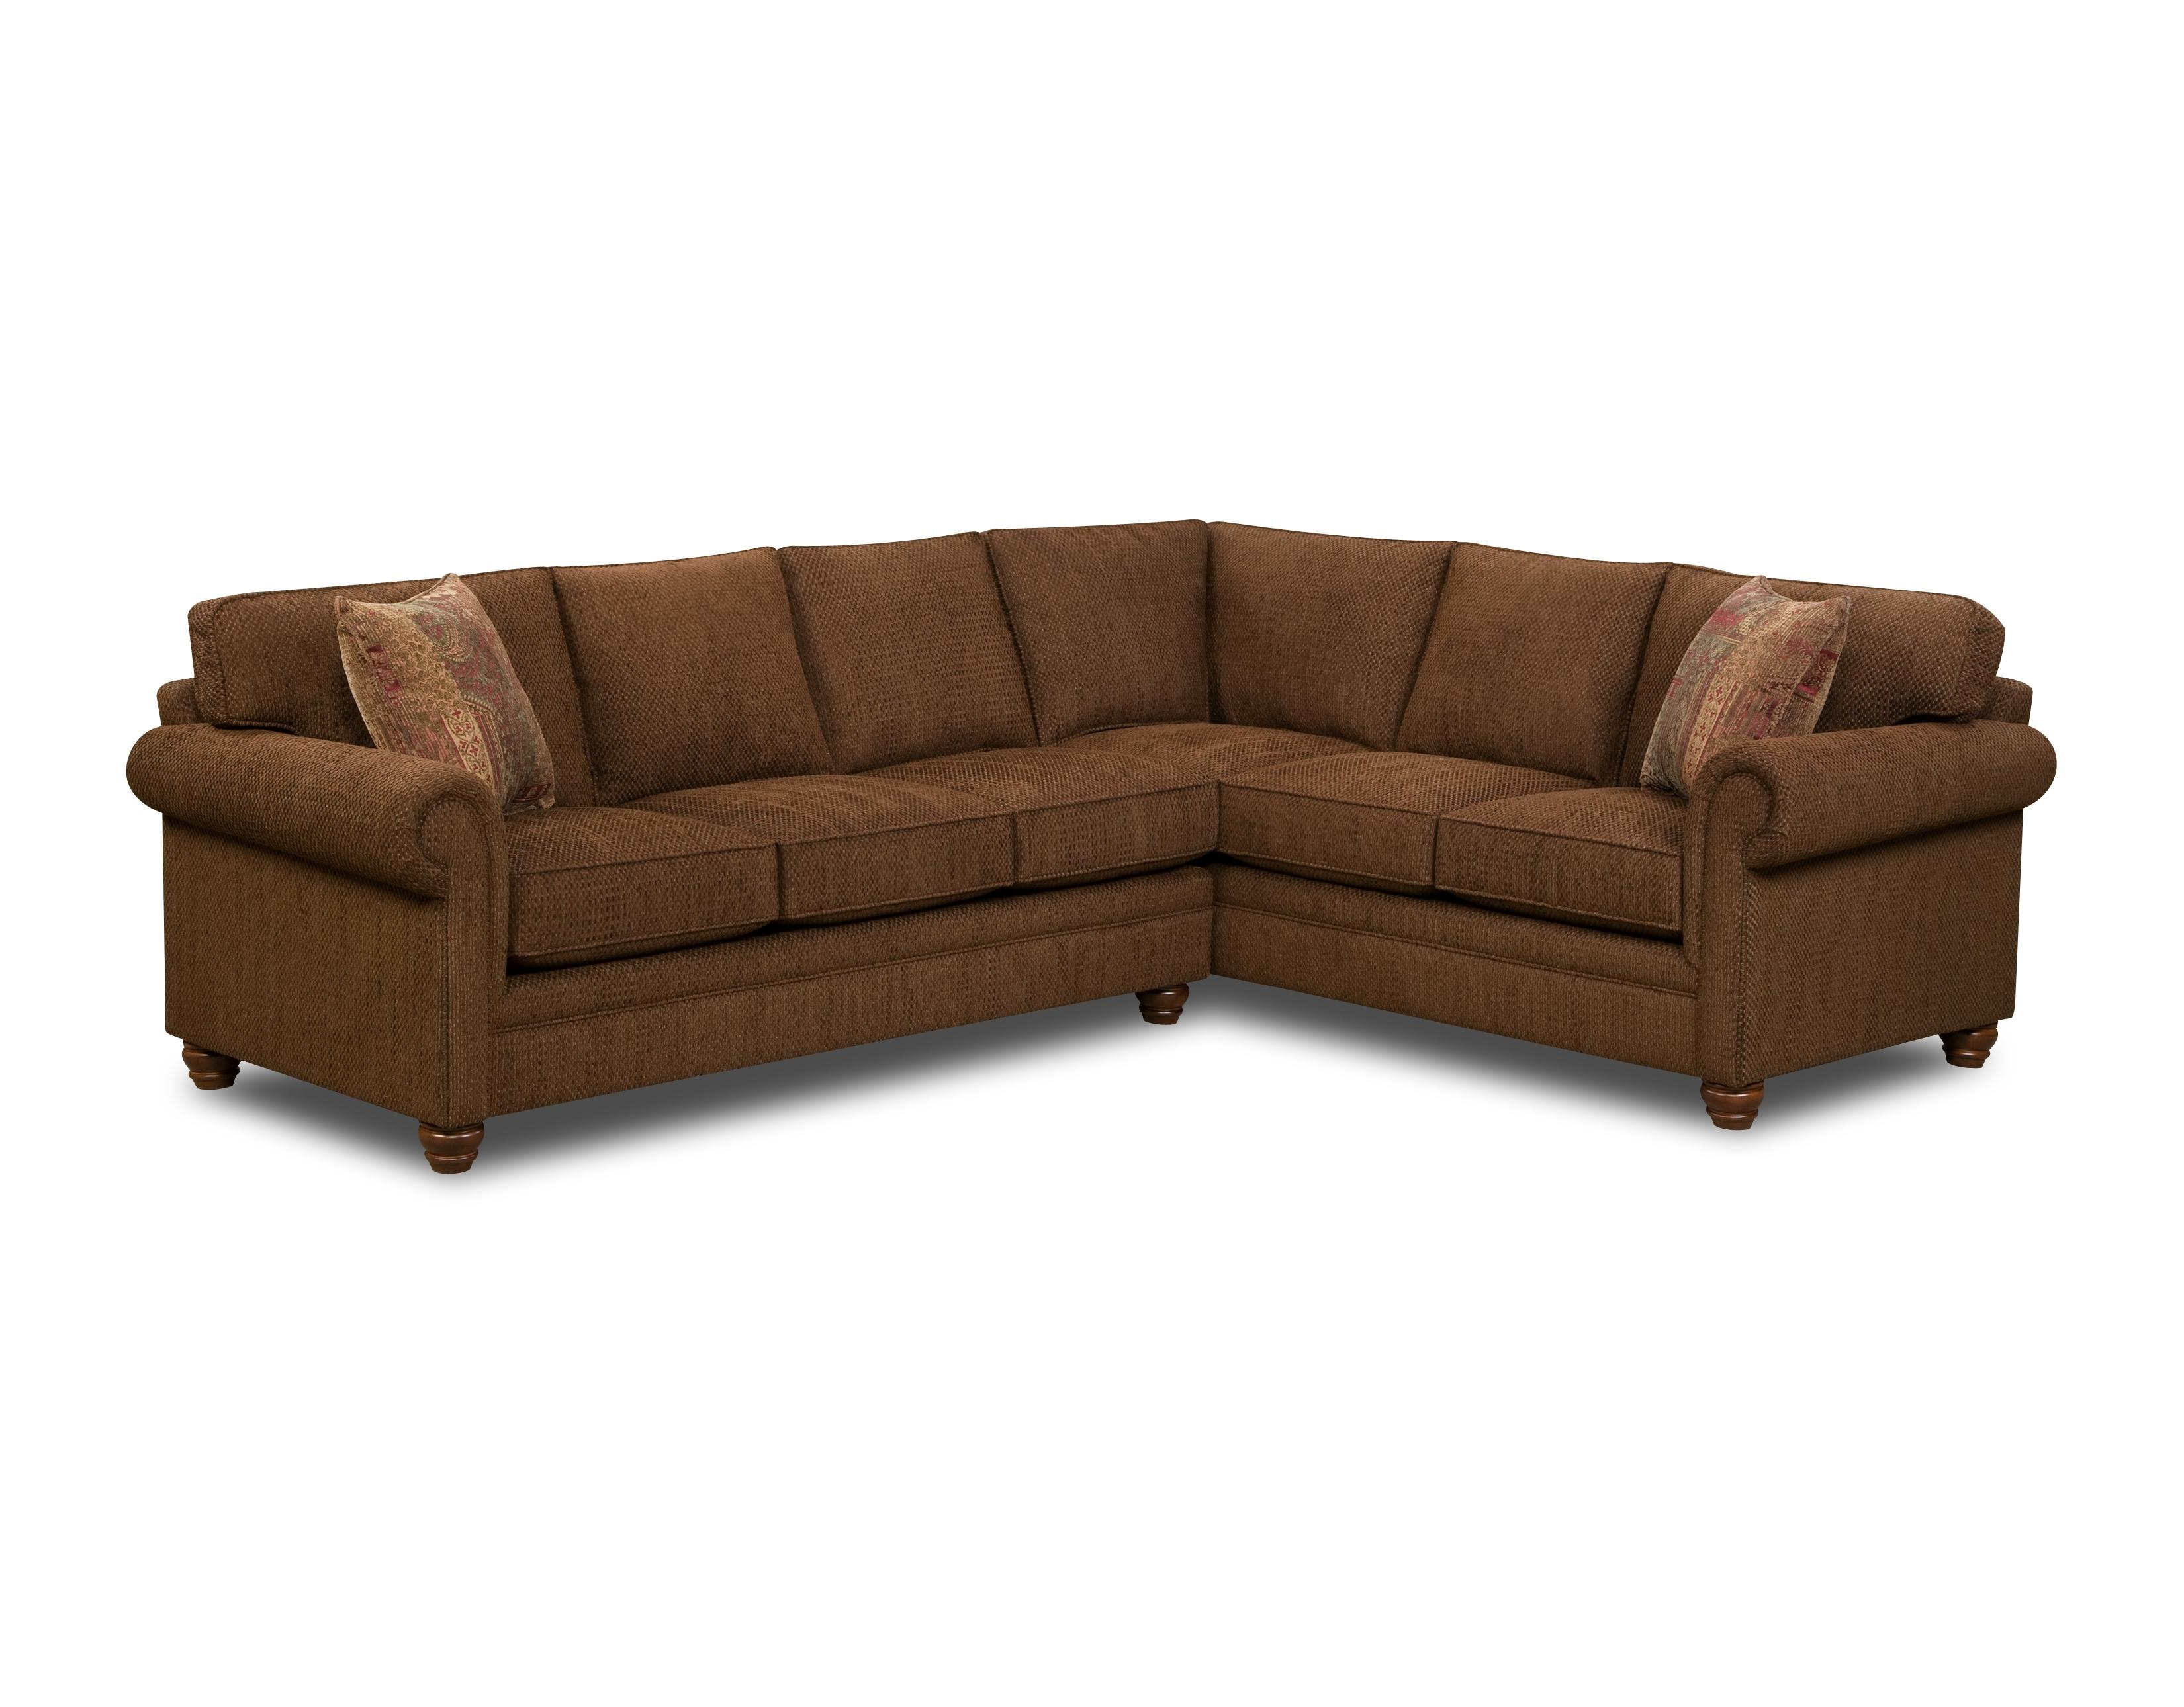 Bauhaus Z18A 2 Piece Traditional Sectional Sofa AHFA Sofa